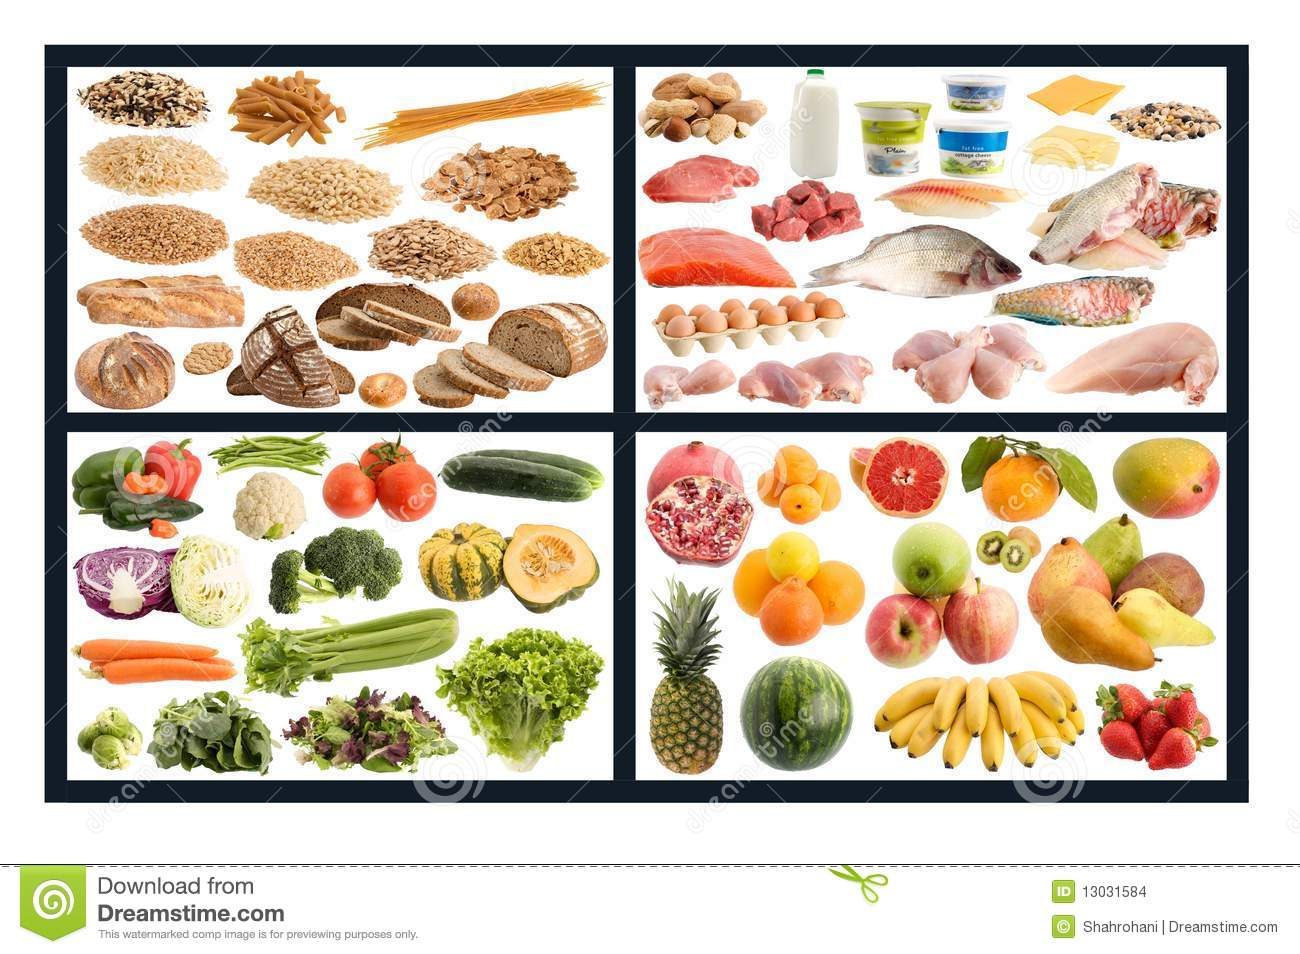 Weight Loss Facts And Myths Healthy Food Guide